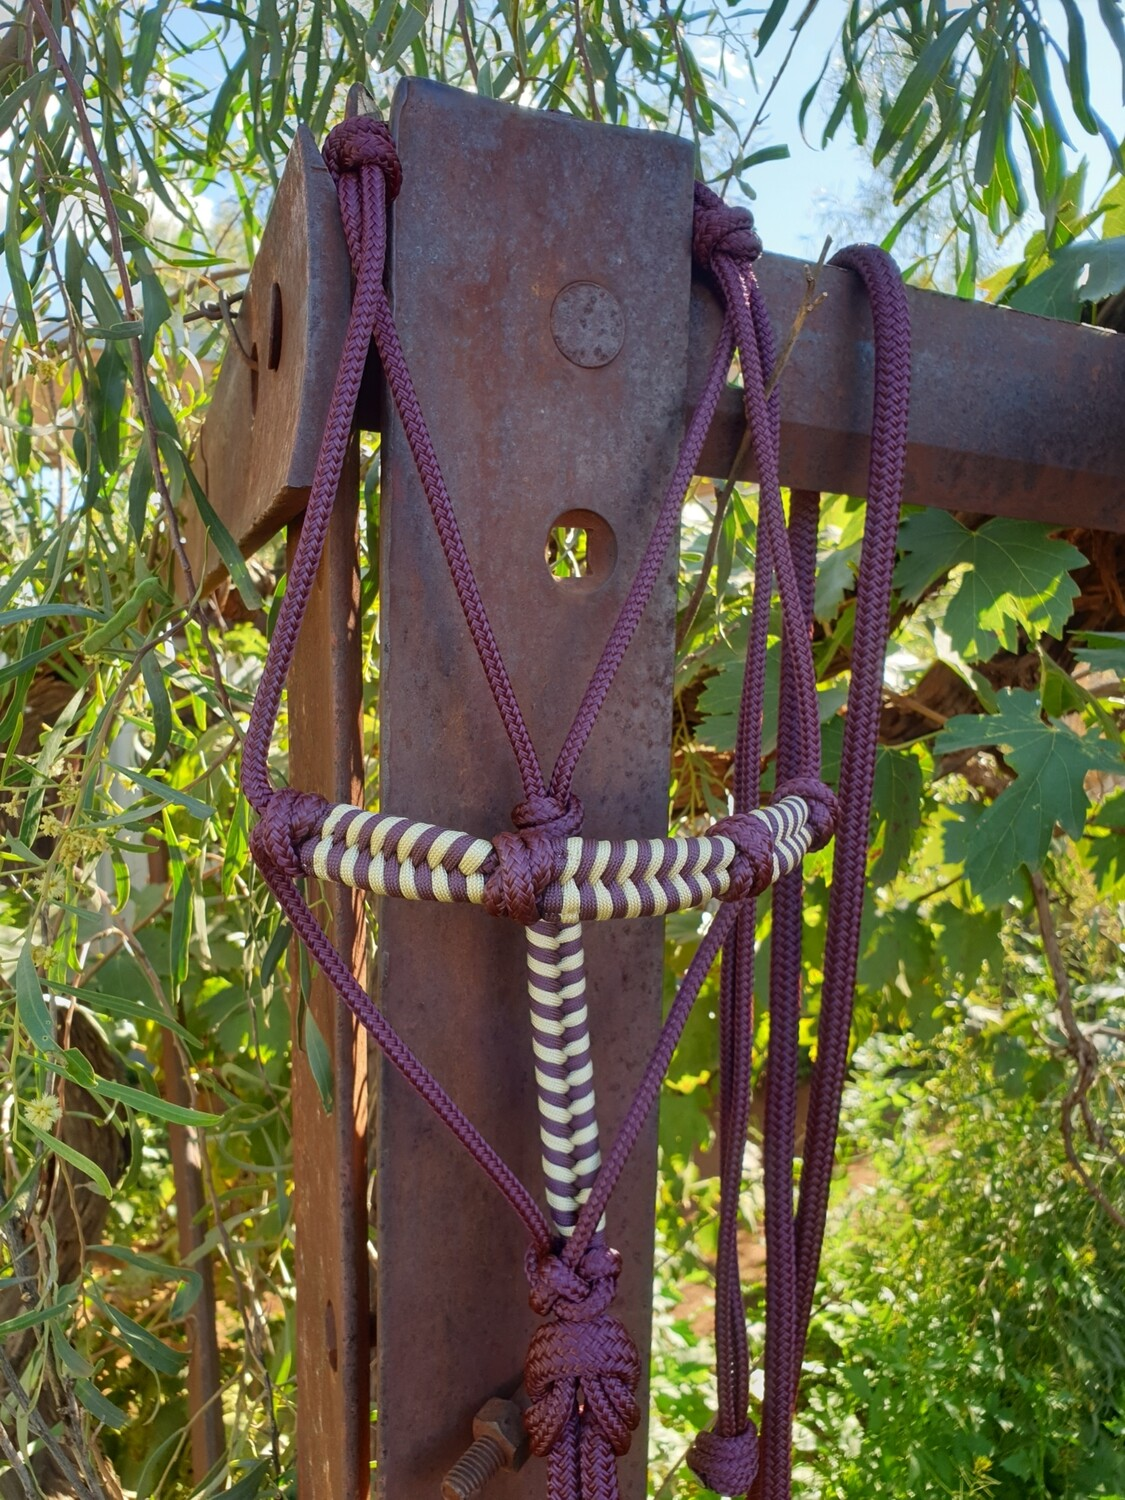 4 Knot Halter with Aztec Braid Burgundy/Beige